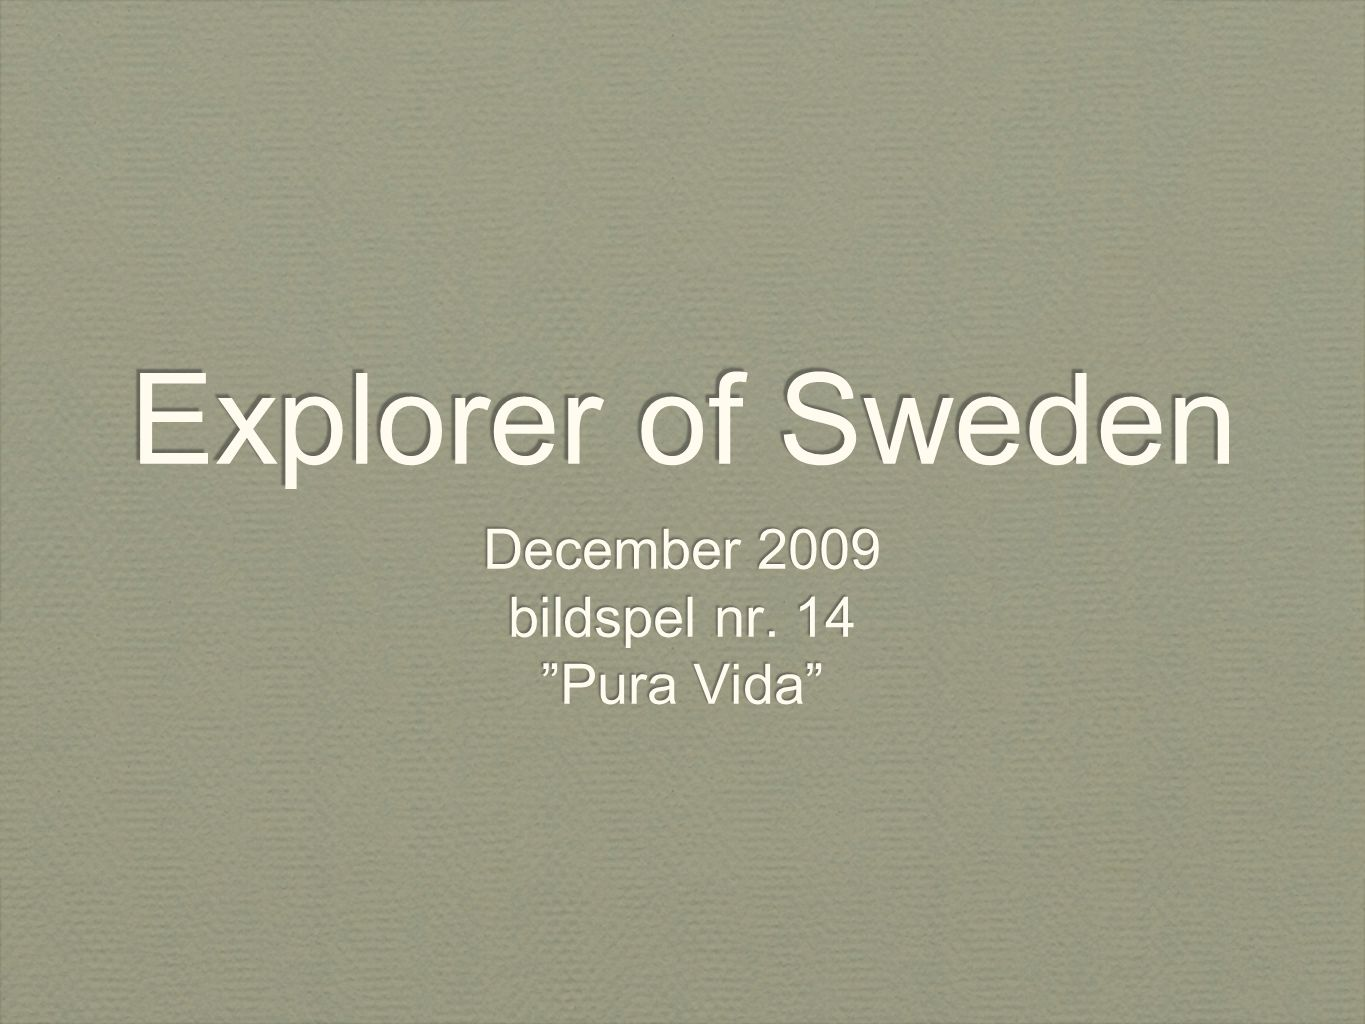 Explorer of Sweden December 2009 bildspel nr. 14 Pura Vida December 2009 bildspel nr.